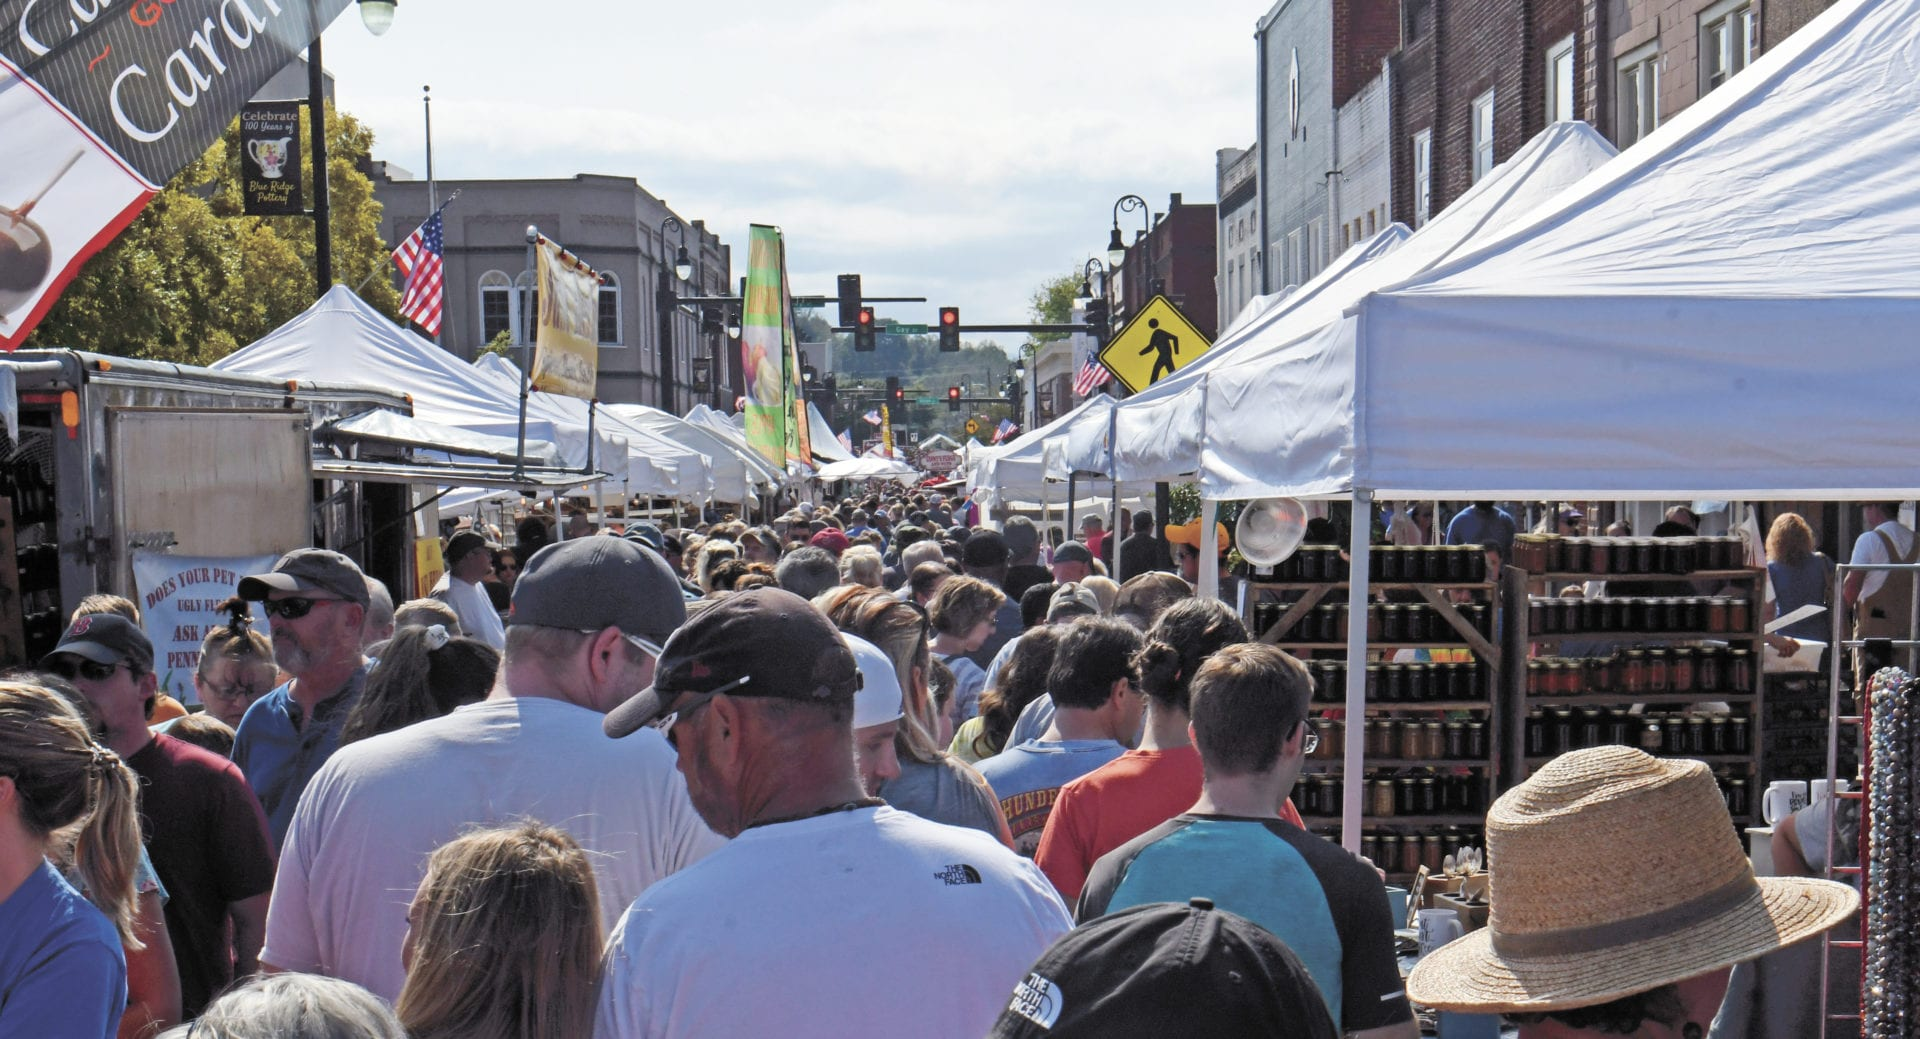 The festival is held across a 5 block section of Downtown Erwin